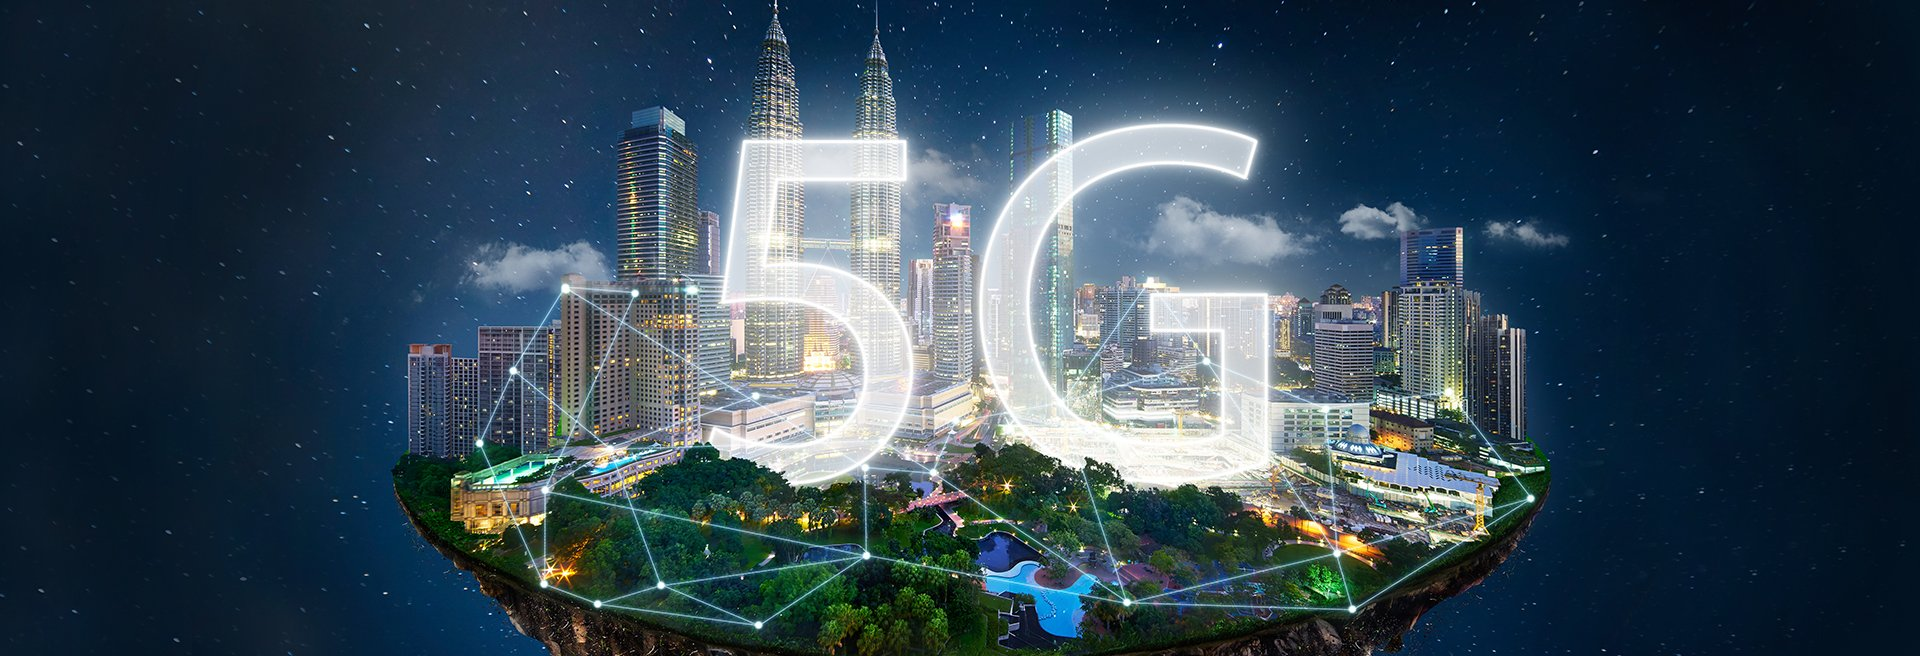 Edge Computing and 5G — How Are They Connected?